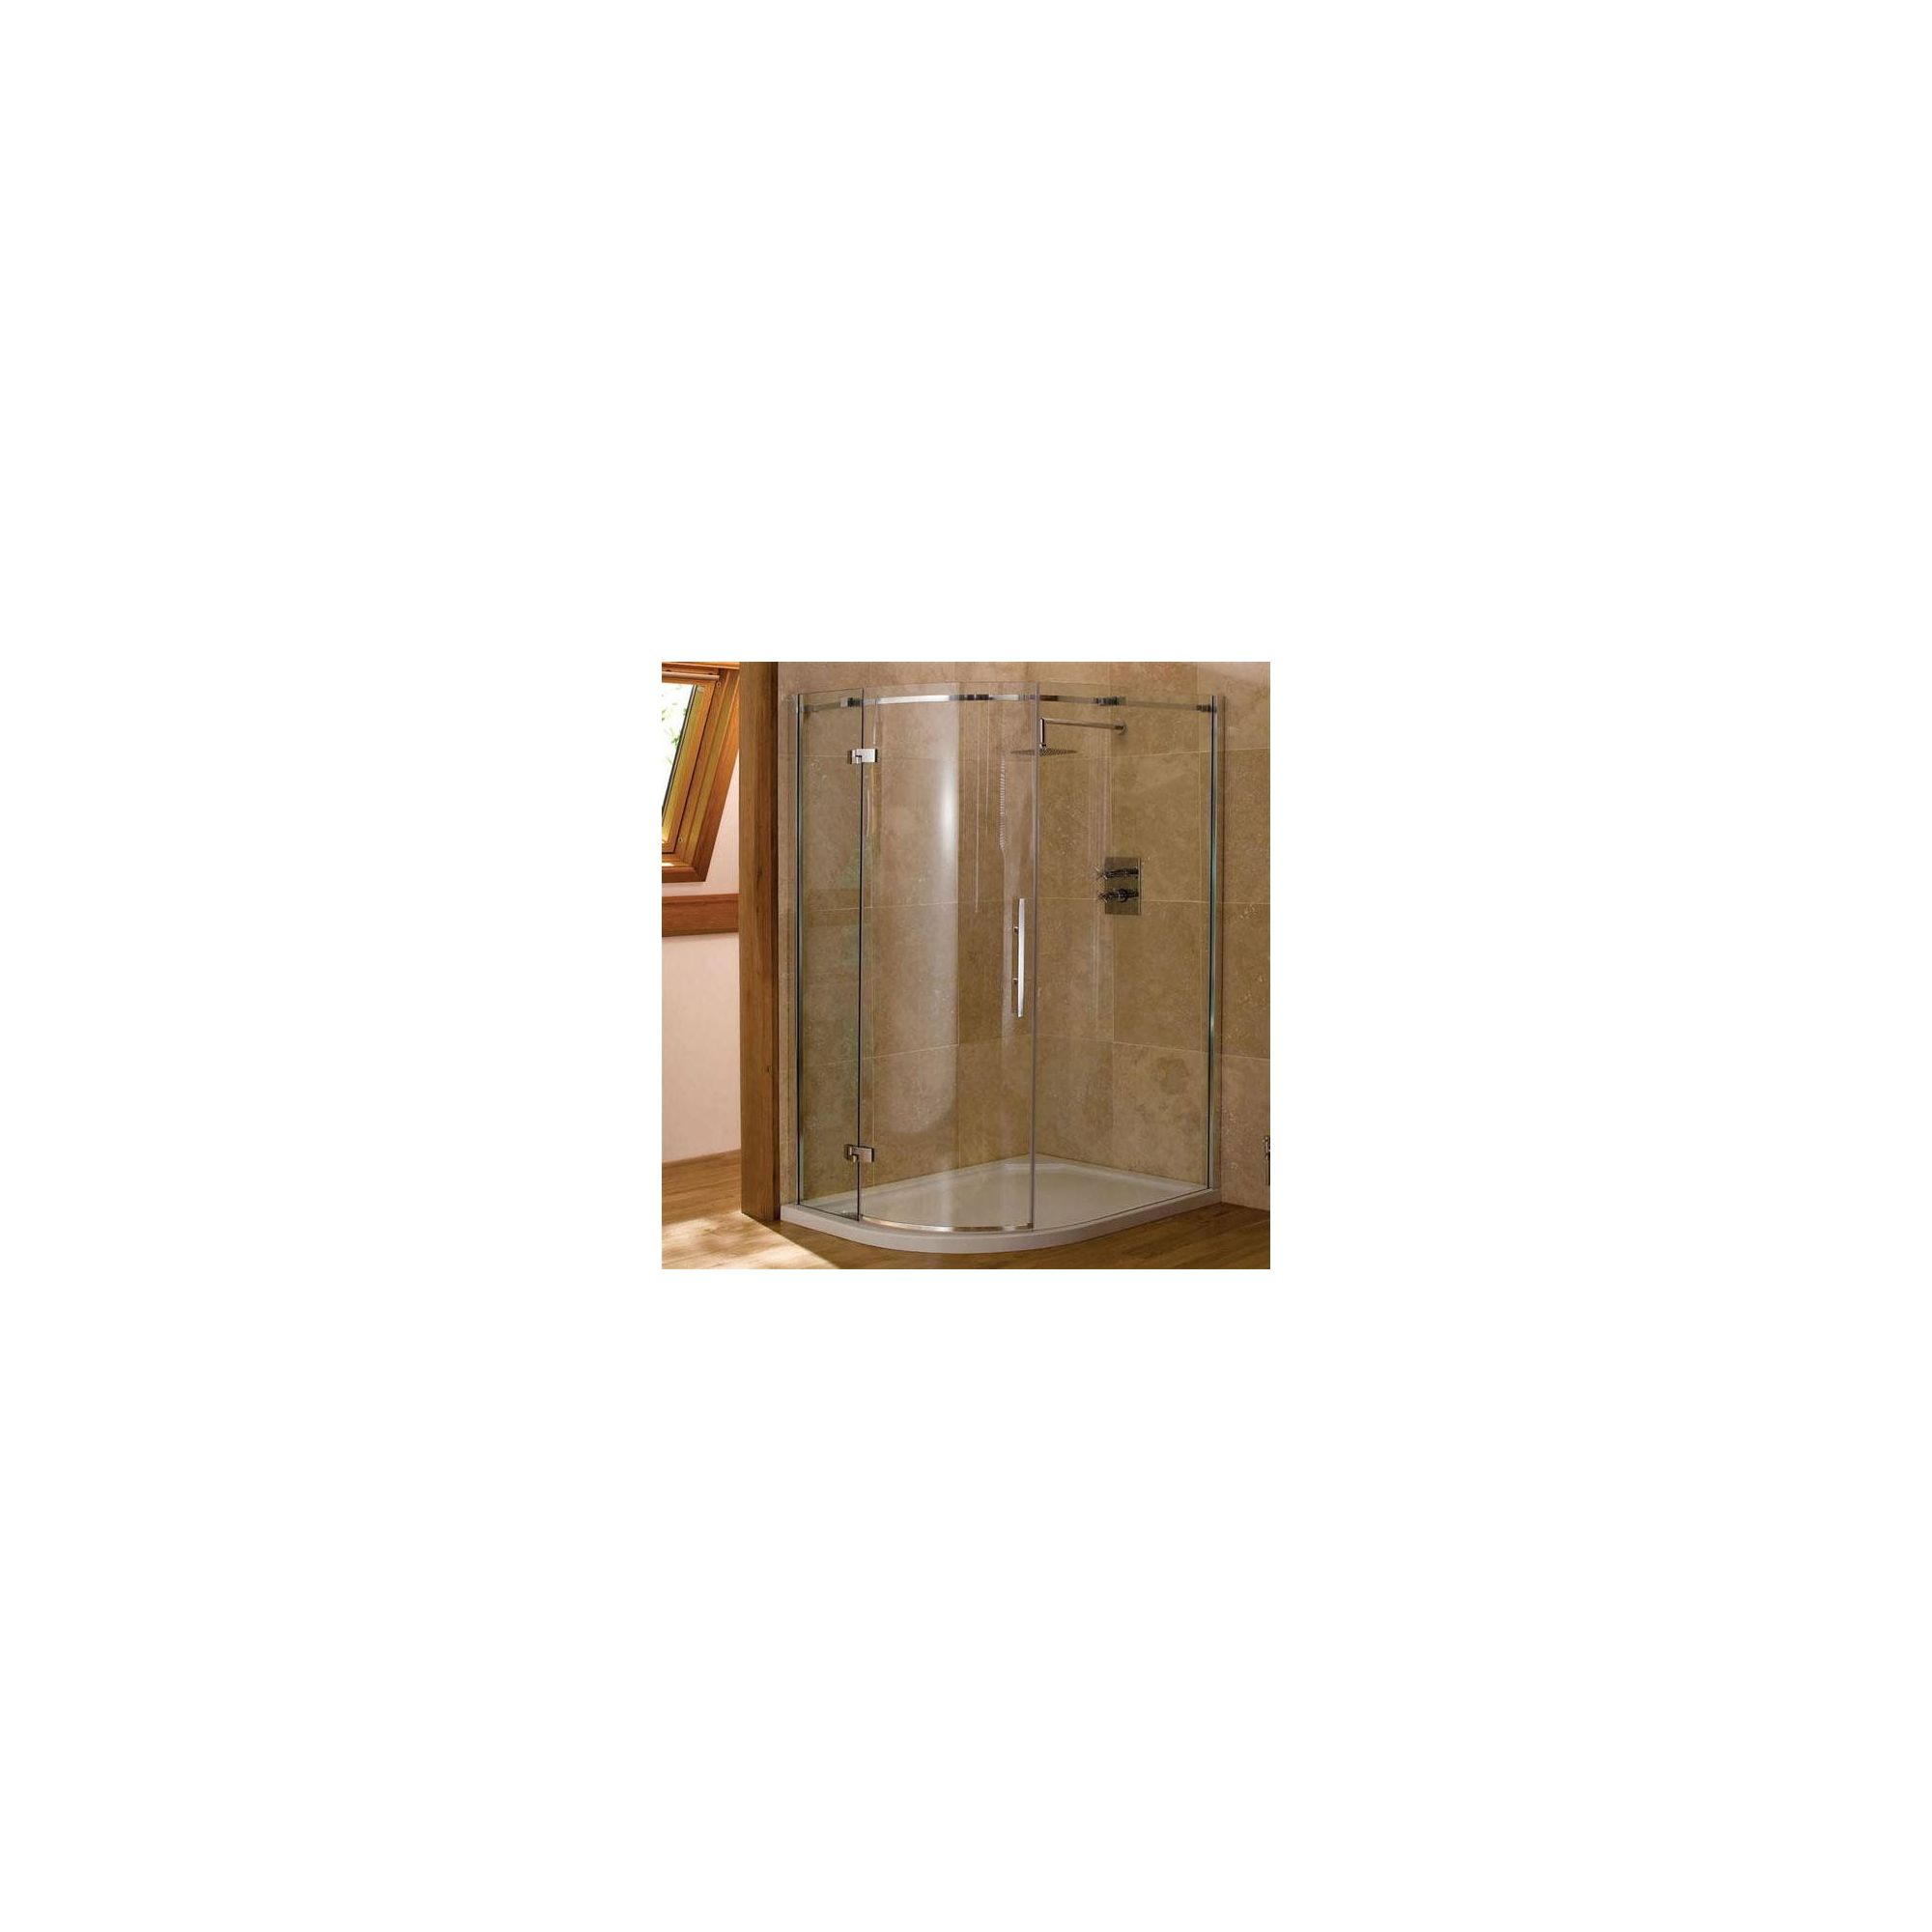 Merlyn Vivid Nine Offset Quadrant Shower Door, 900mm x 760mm, Right Handed, 8mm Glass at Tescos Direct